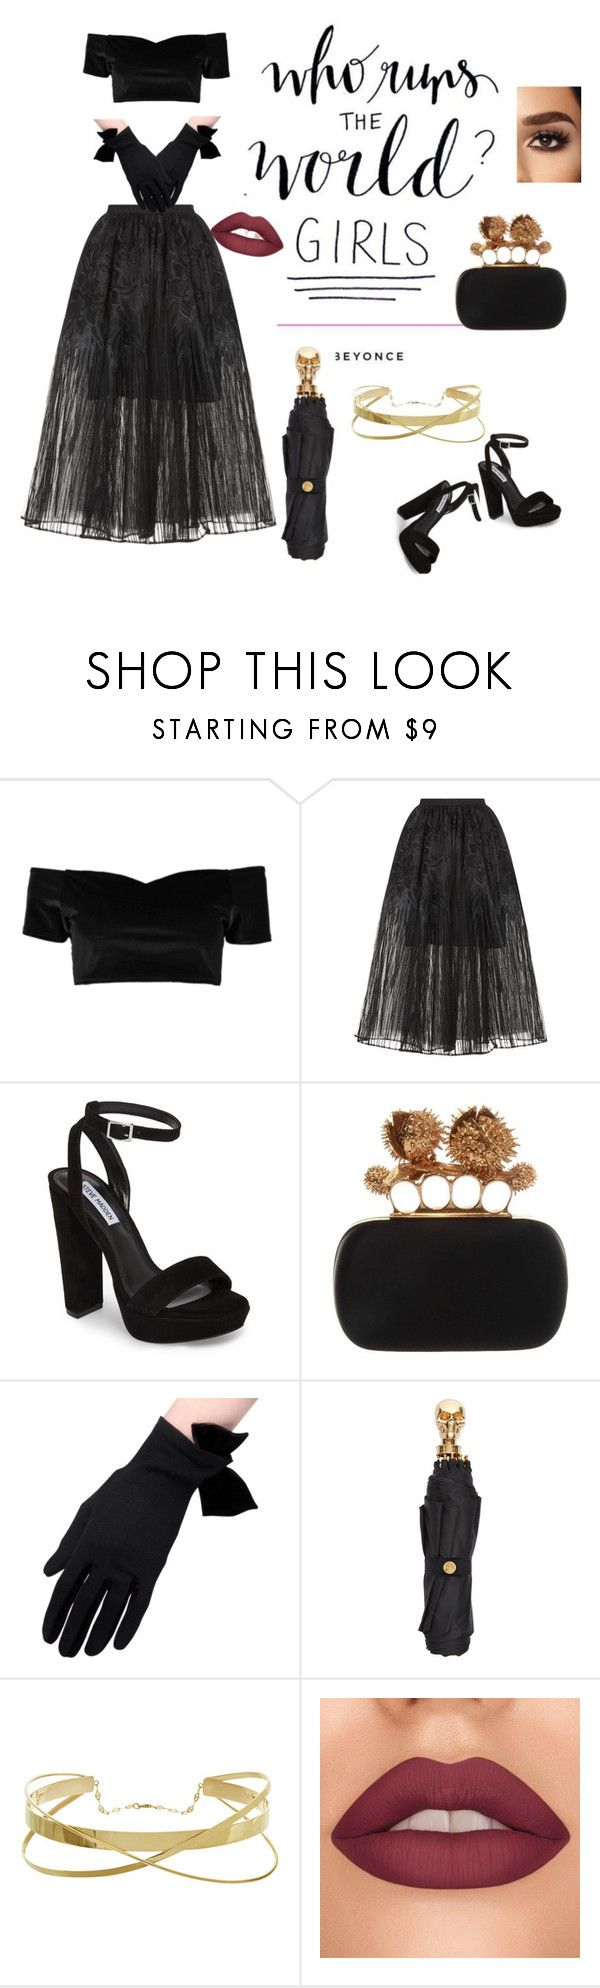 """Black beauty"" by hennessy-dxn ❤ liked on Polyvore featuring Boohoo, Elie Saab, Steve Madden, Alexander McQueen, girlpower and powerlook"